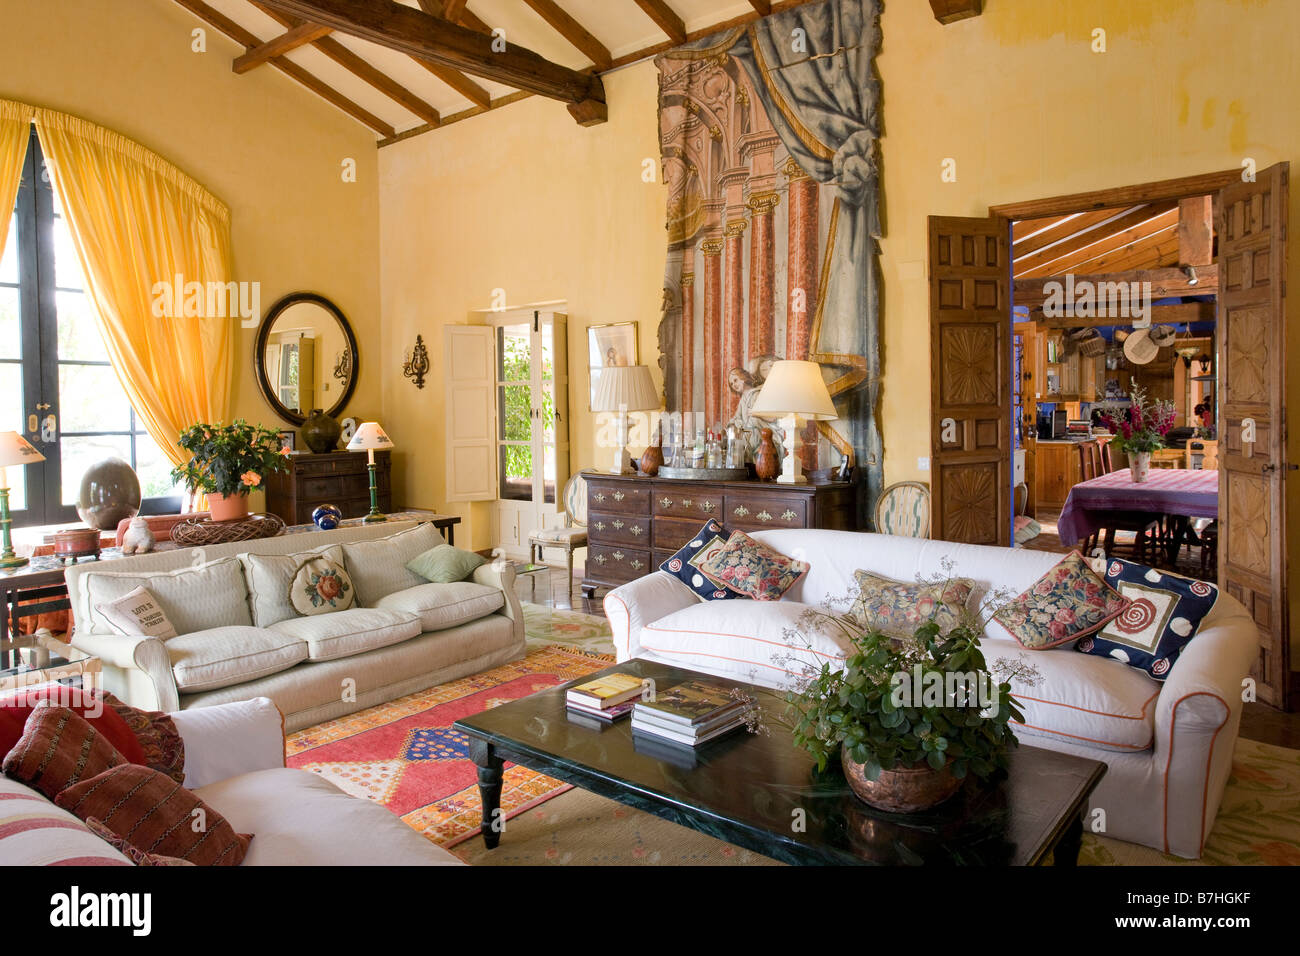 Living Room In Spanish Painting Endearing Large White Sofas In Yellow Spanish Living Room With Trompe L Oeil . Inspiration Design